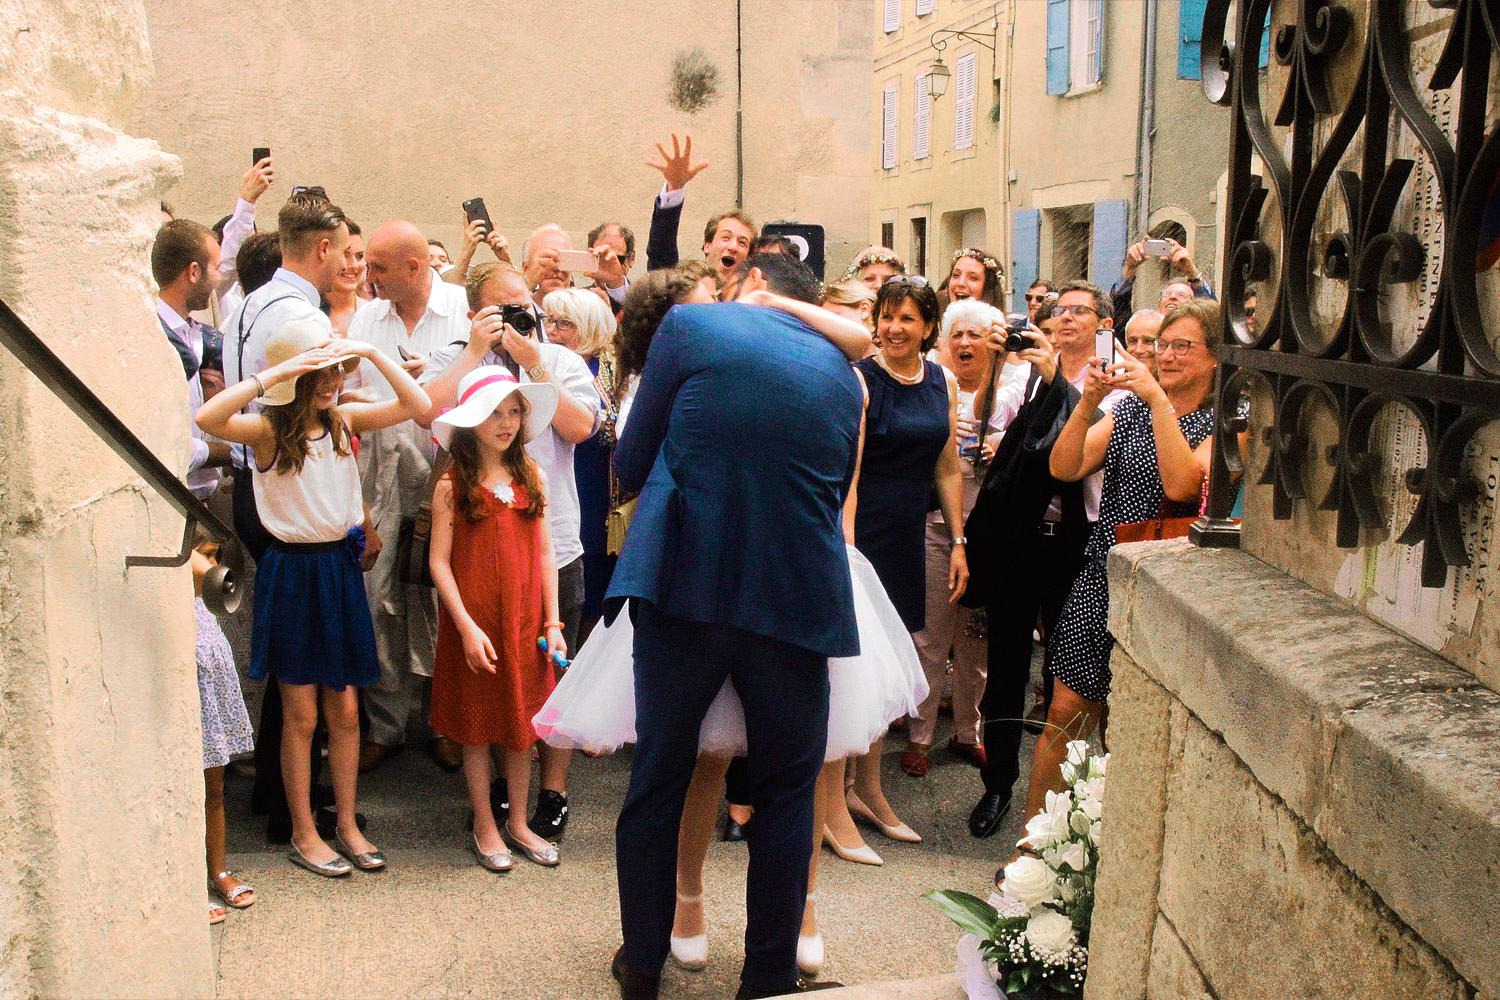 Confetti rains down on kissing French couple